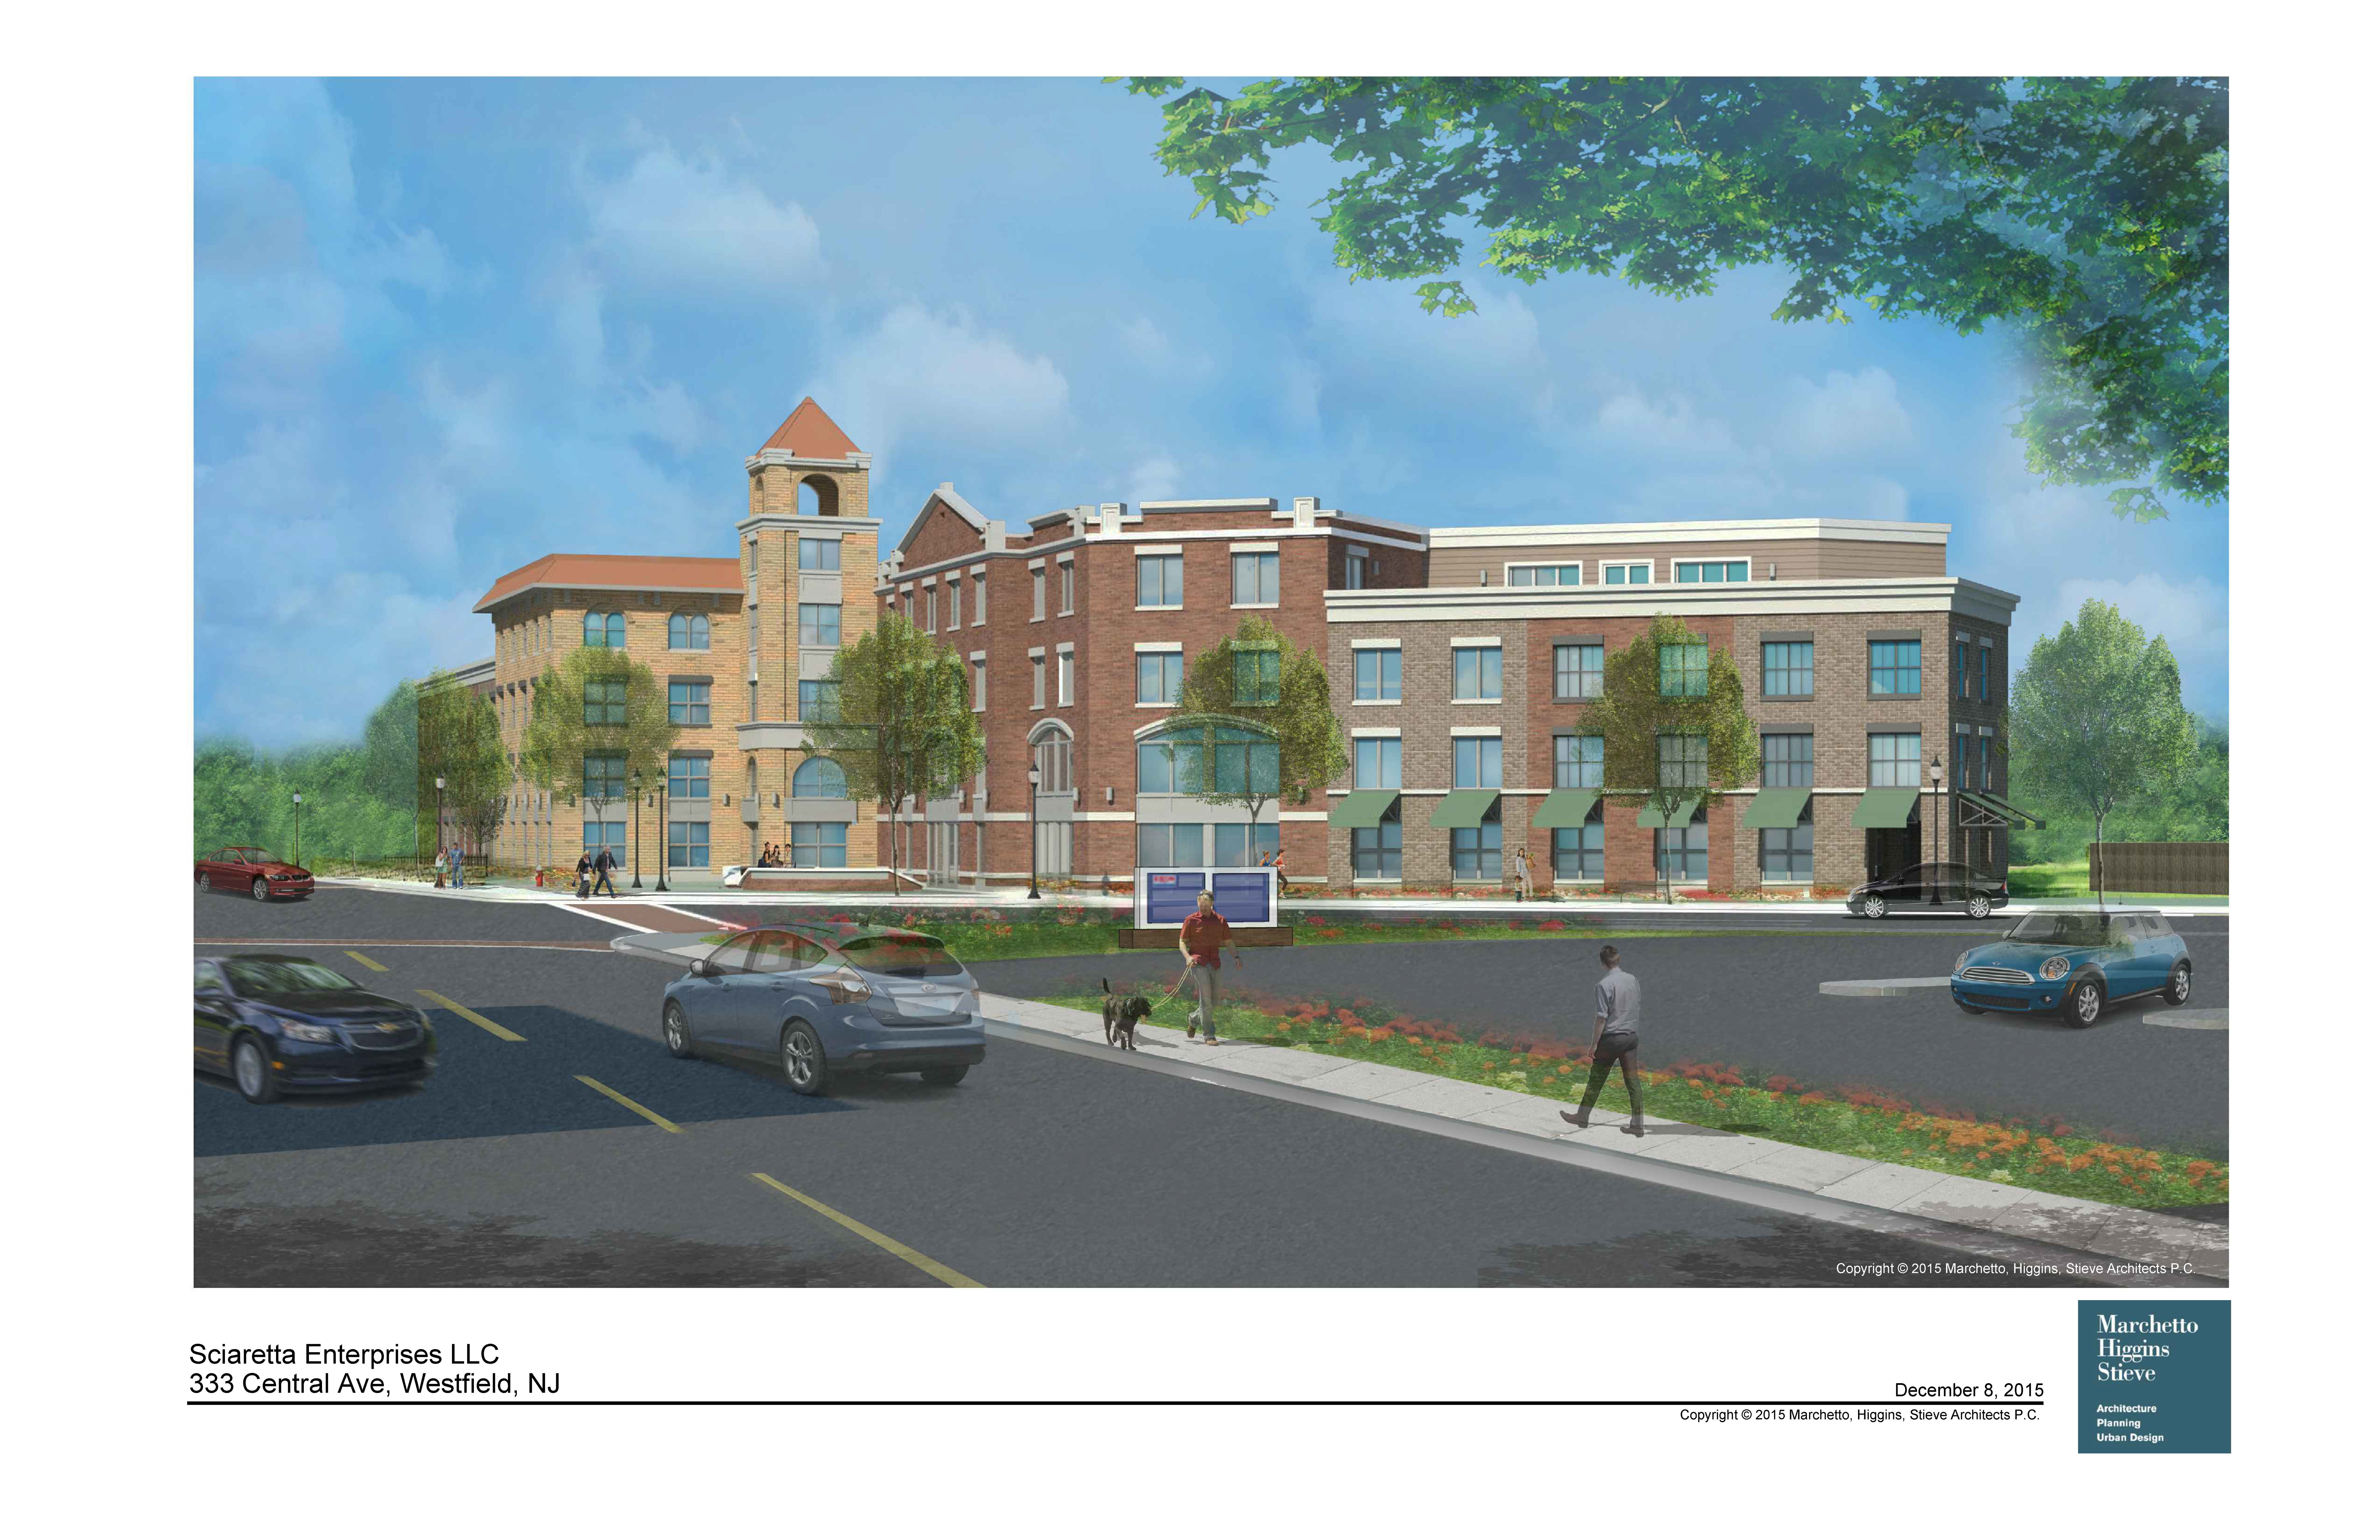 New Apartments in Westfield Could Appeal to Empty Nesters as Well